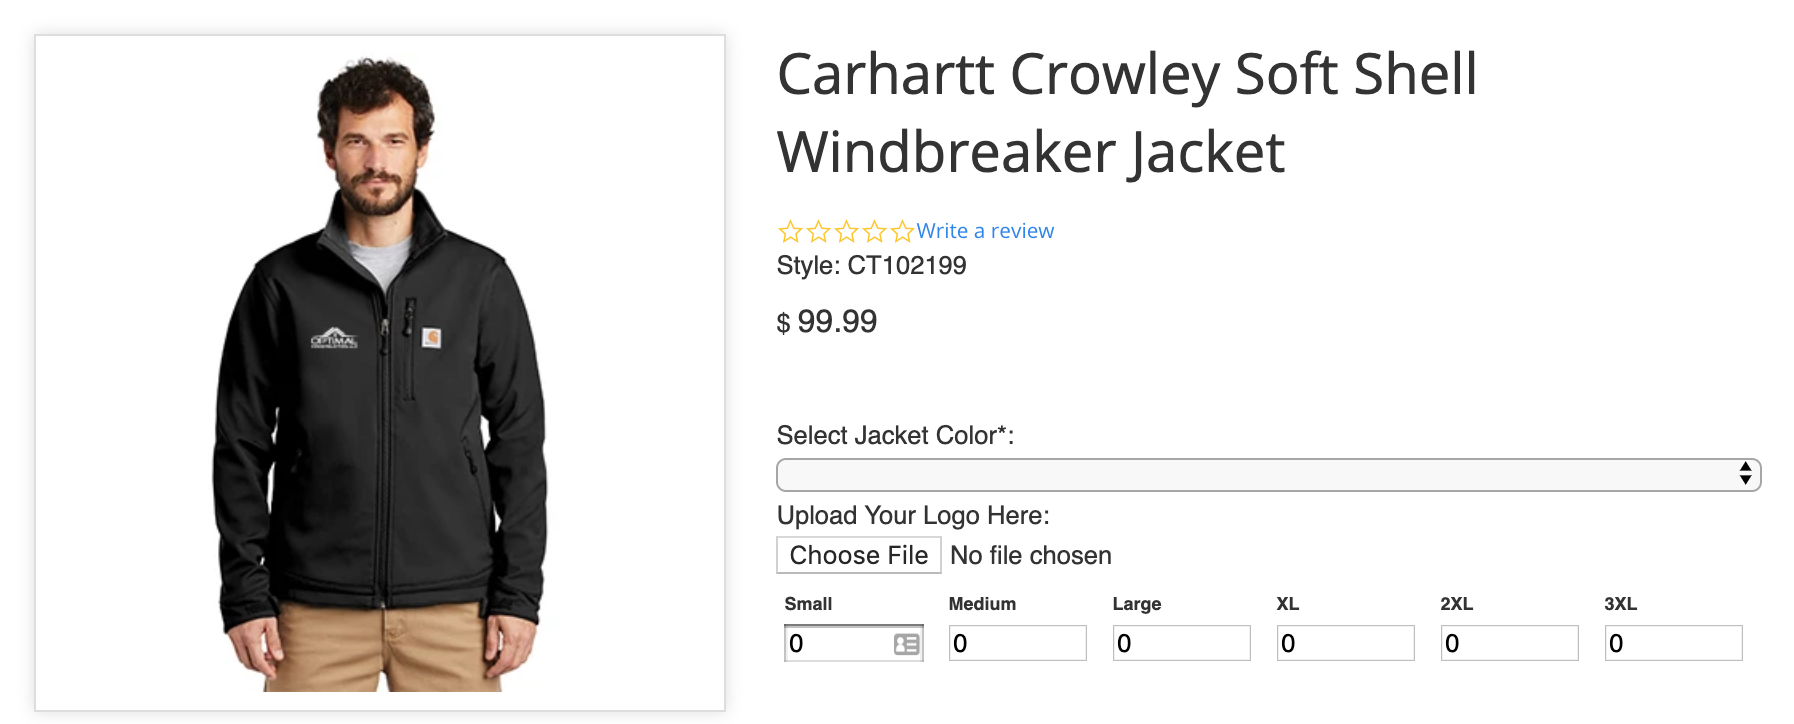 Image of Carhartt windbreaker jacket